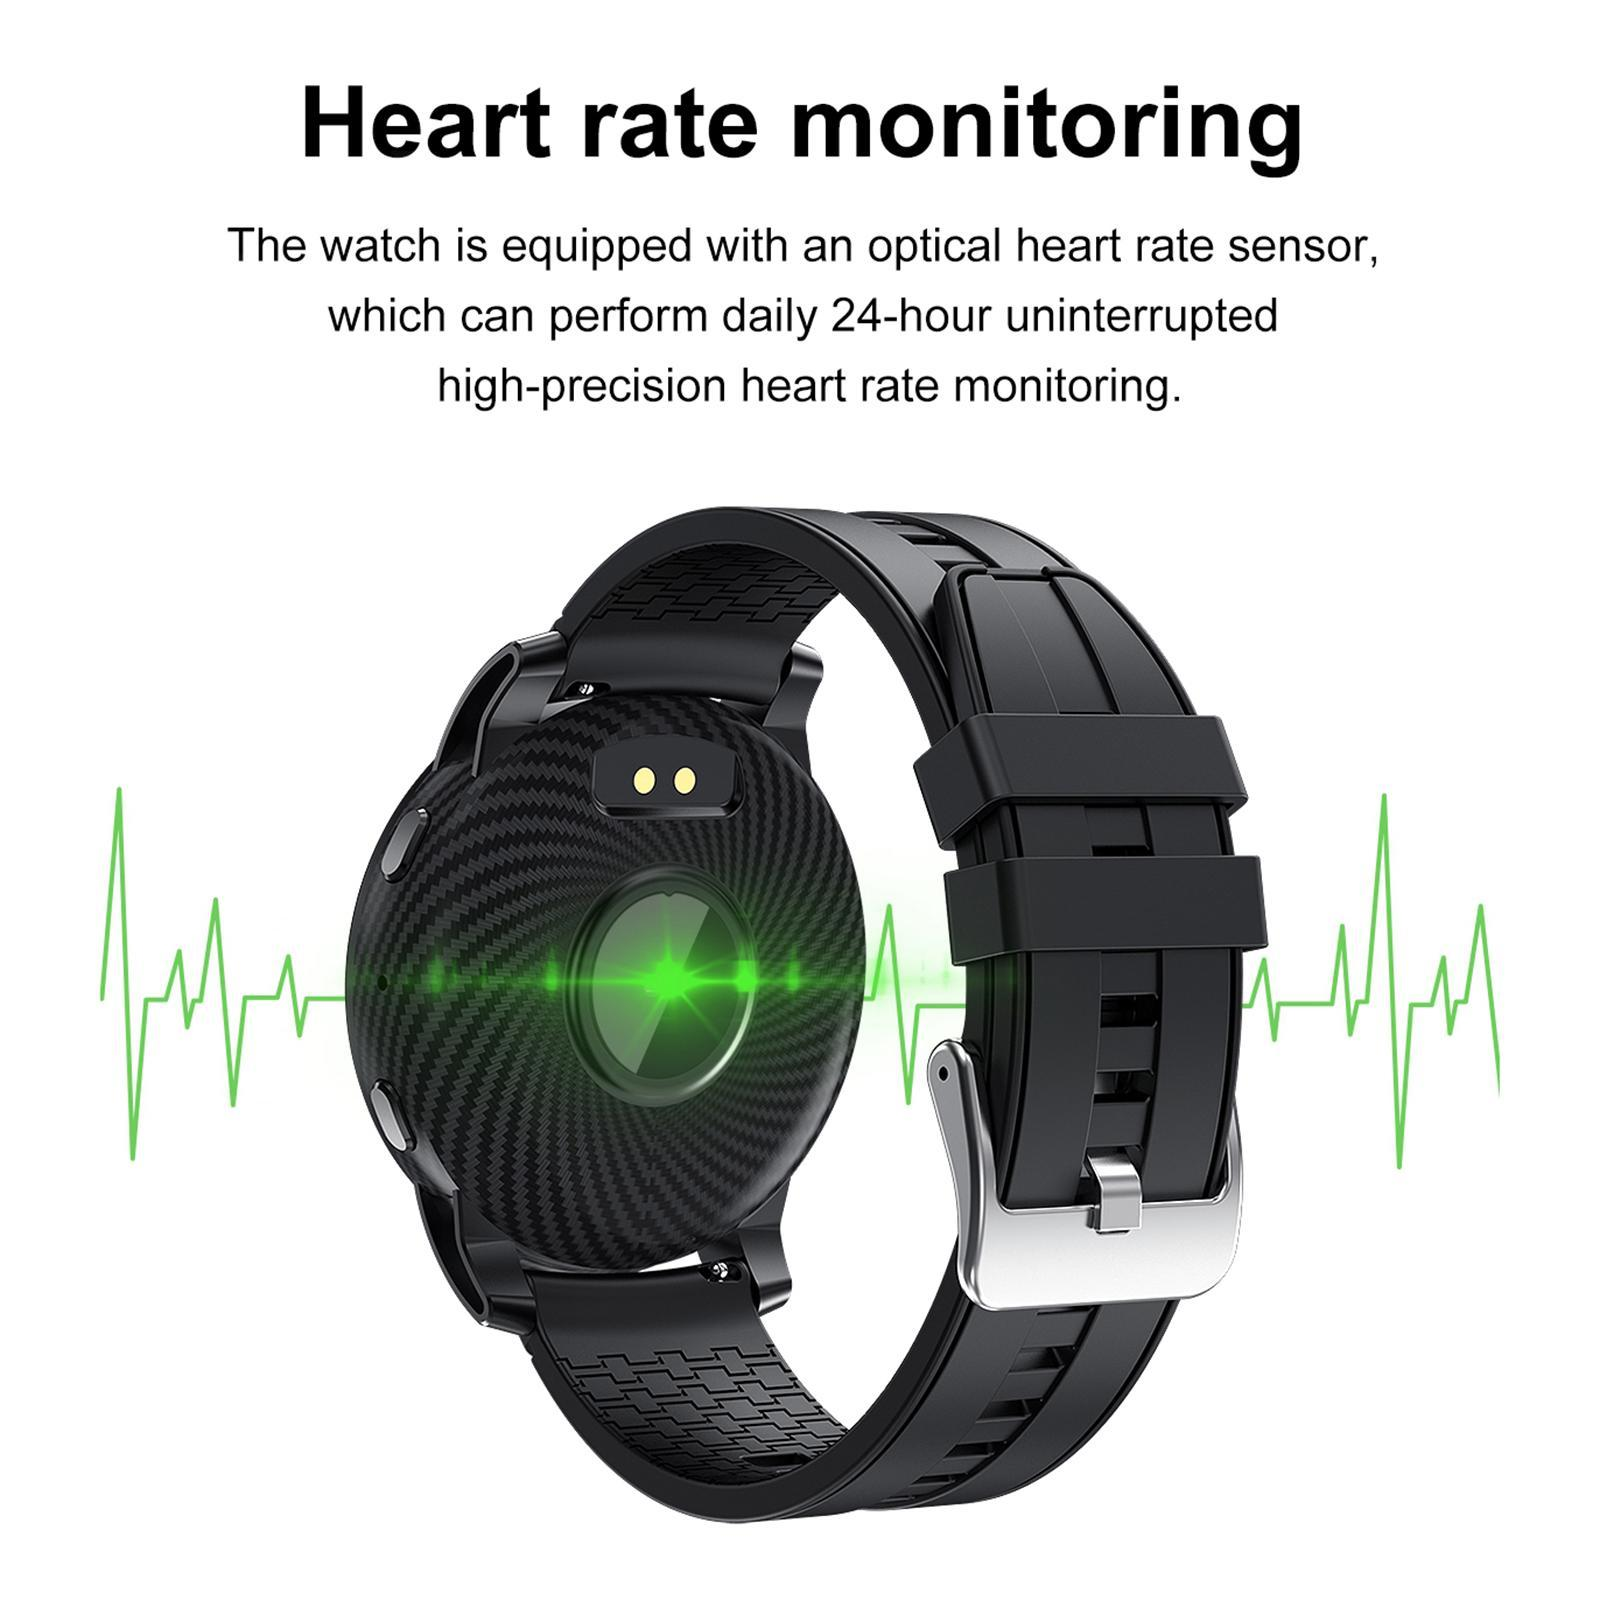 Hommes-Smart-Watch-Bluetooth-Call-Fitness-Tracker-frequence-cardiaque-sommeil miniature 13